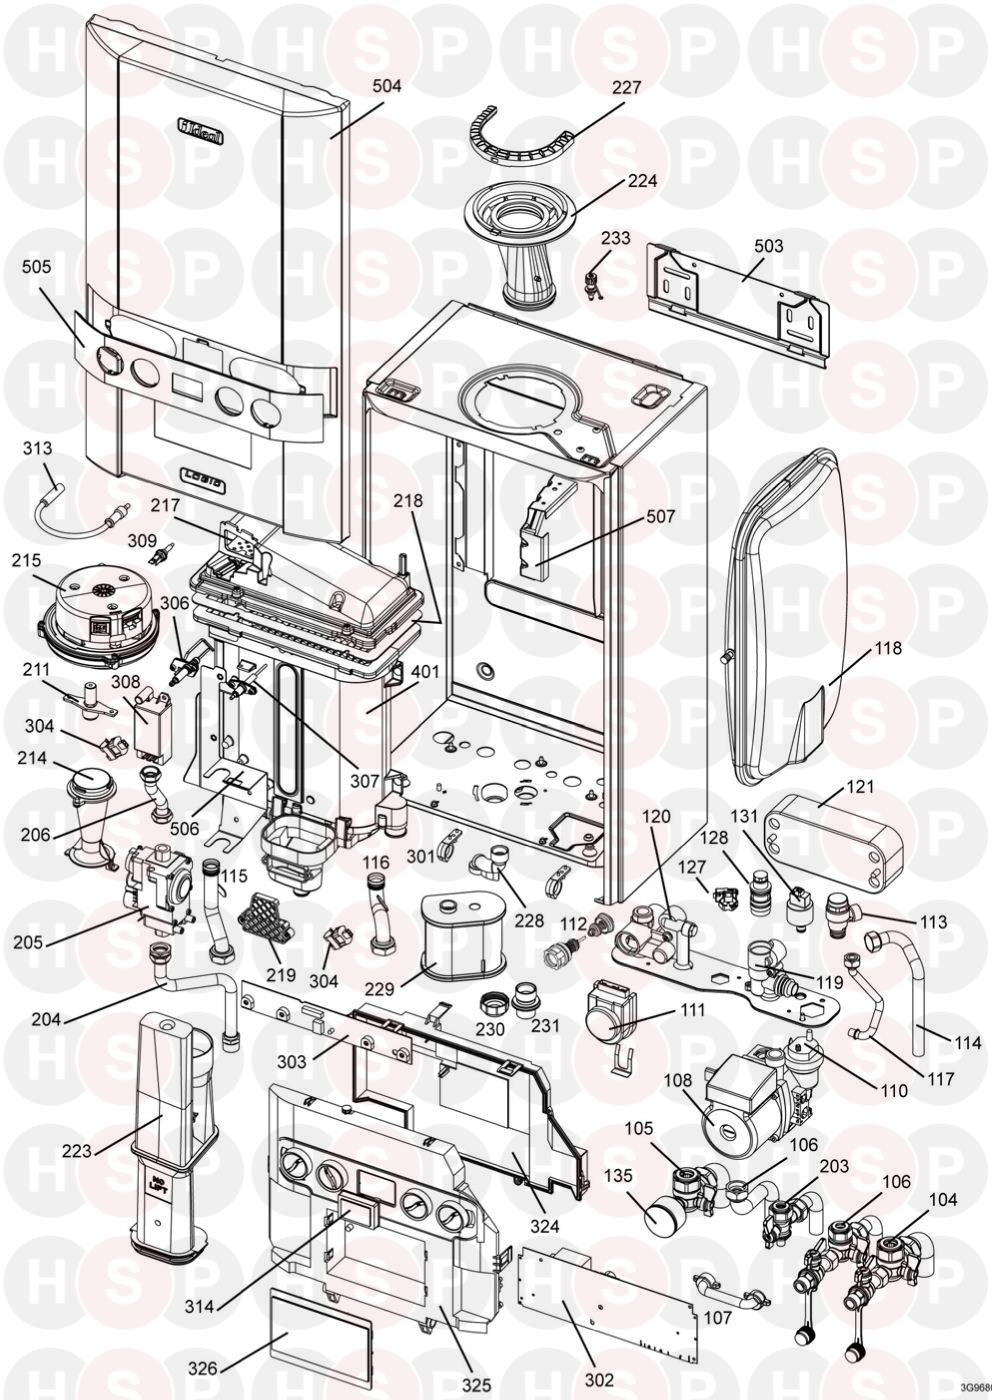 Ideal LOGIC + COMBI 35 (BOILER EXPLODED VIEW) Diagram